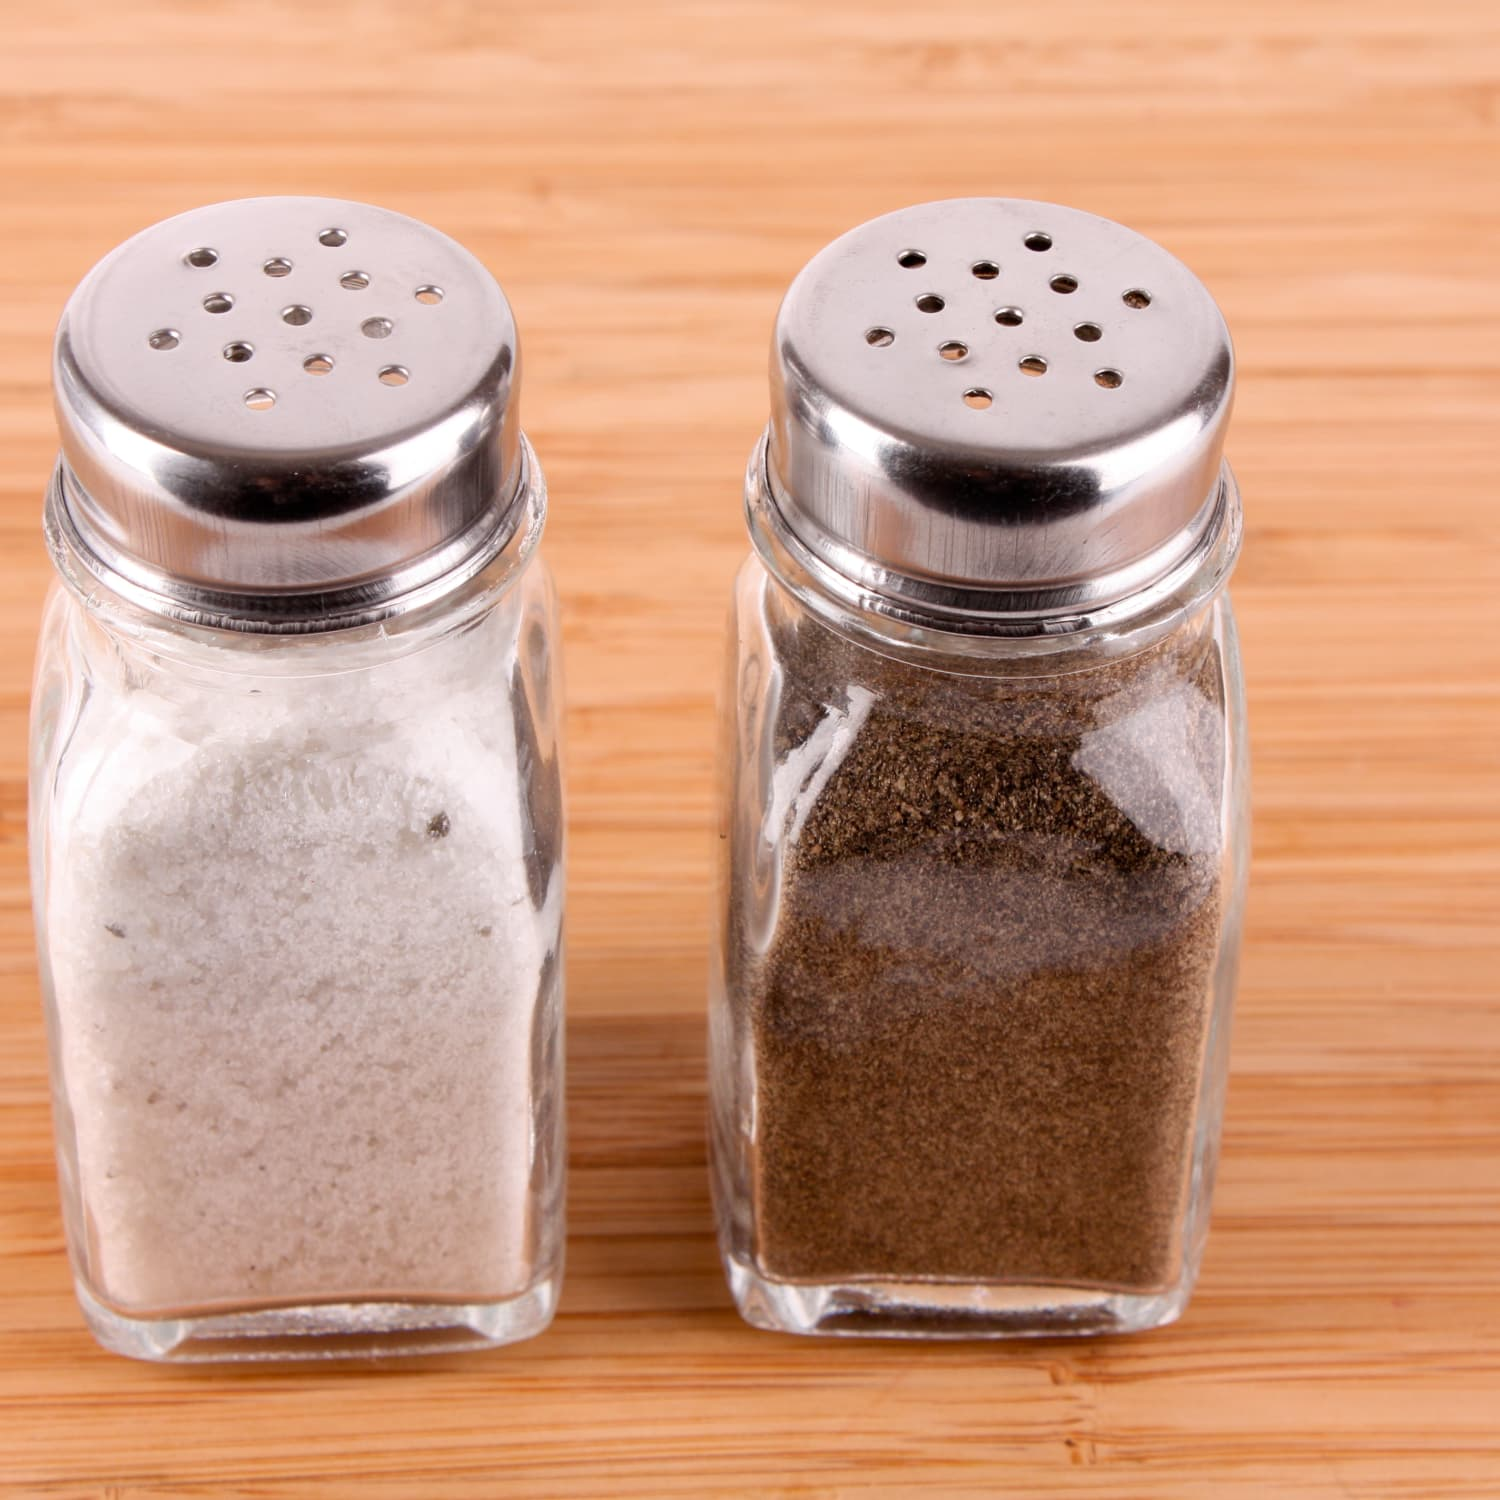 Salt And Pepper Shaker Trick Is Blowing Up The Internet Kitchn